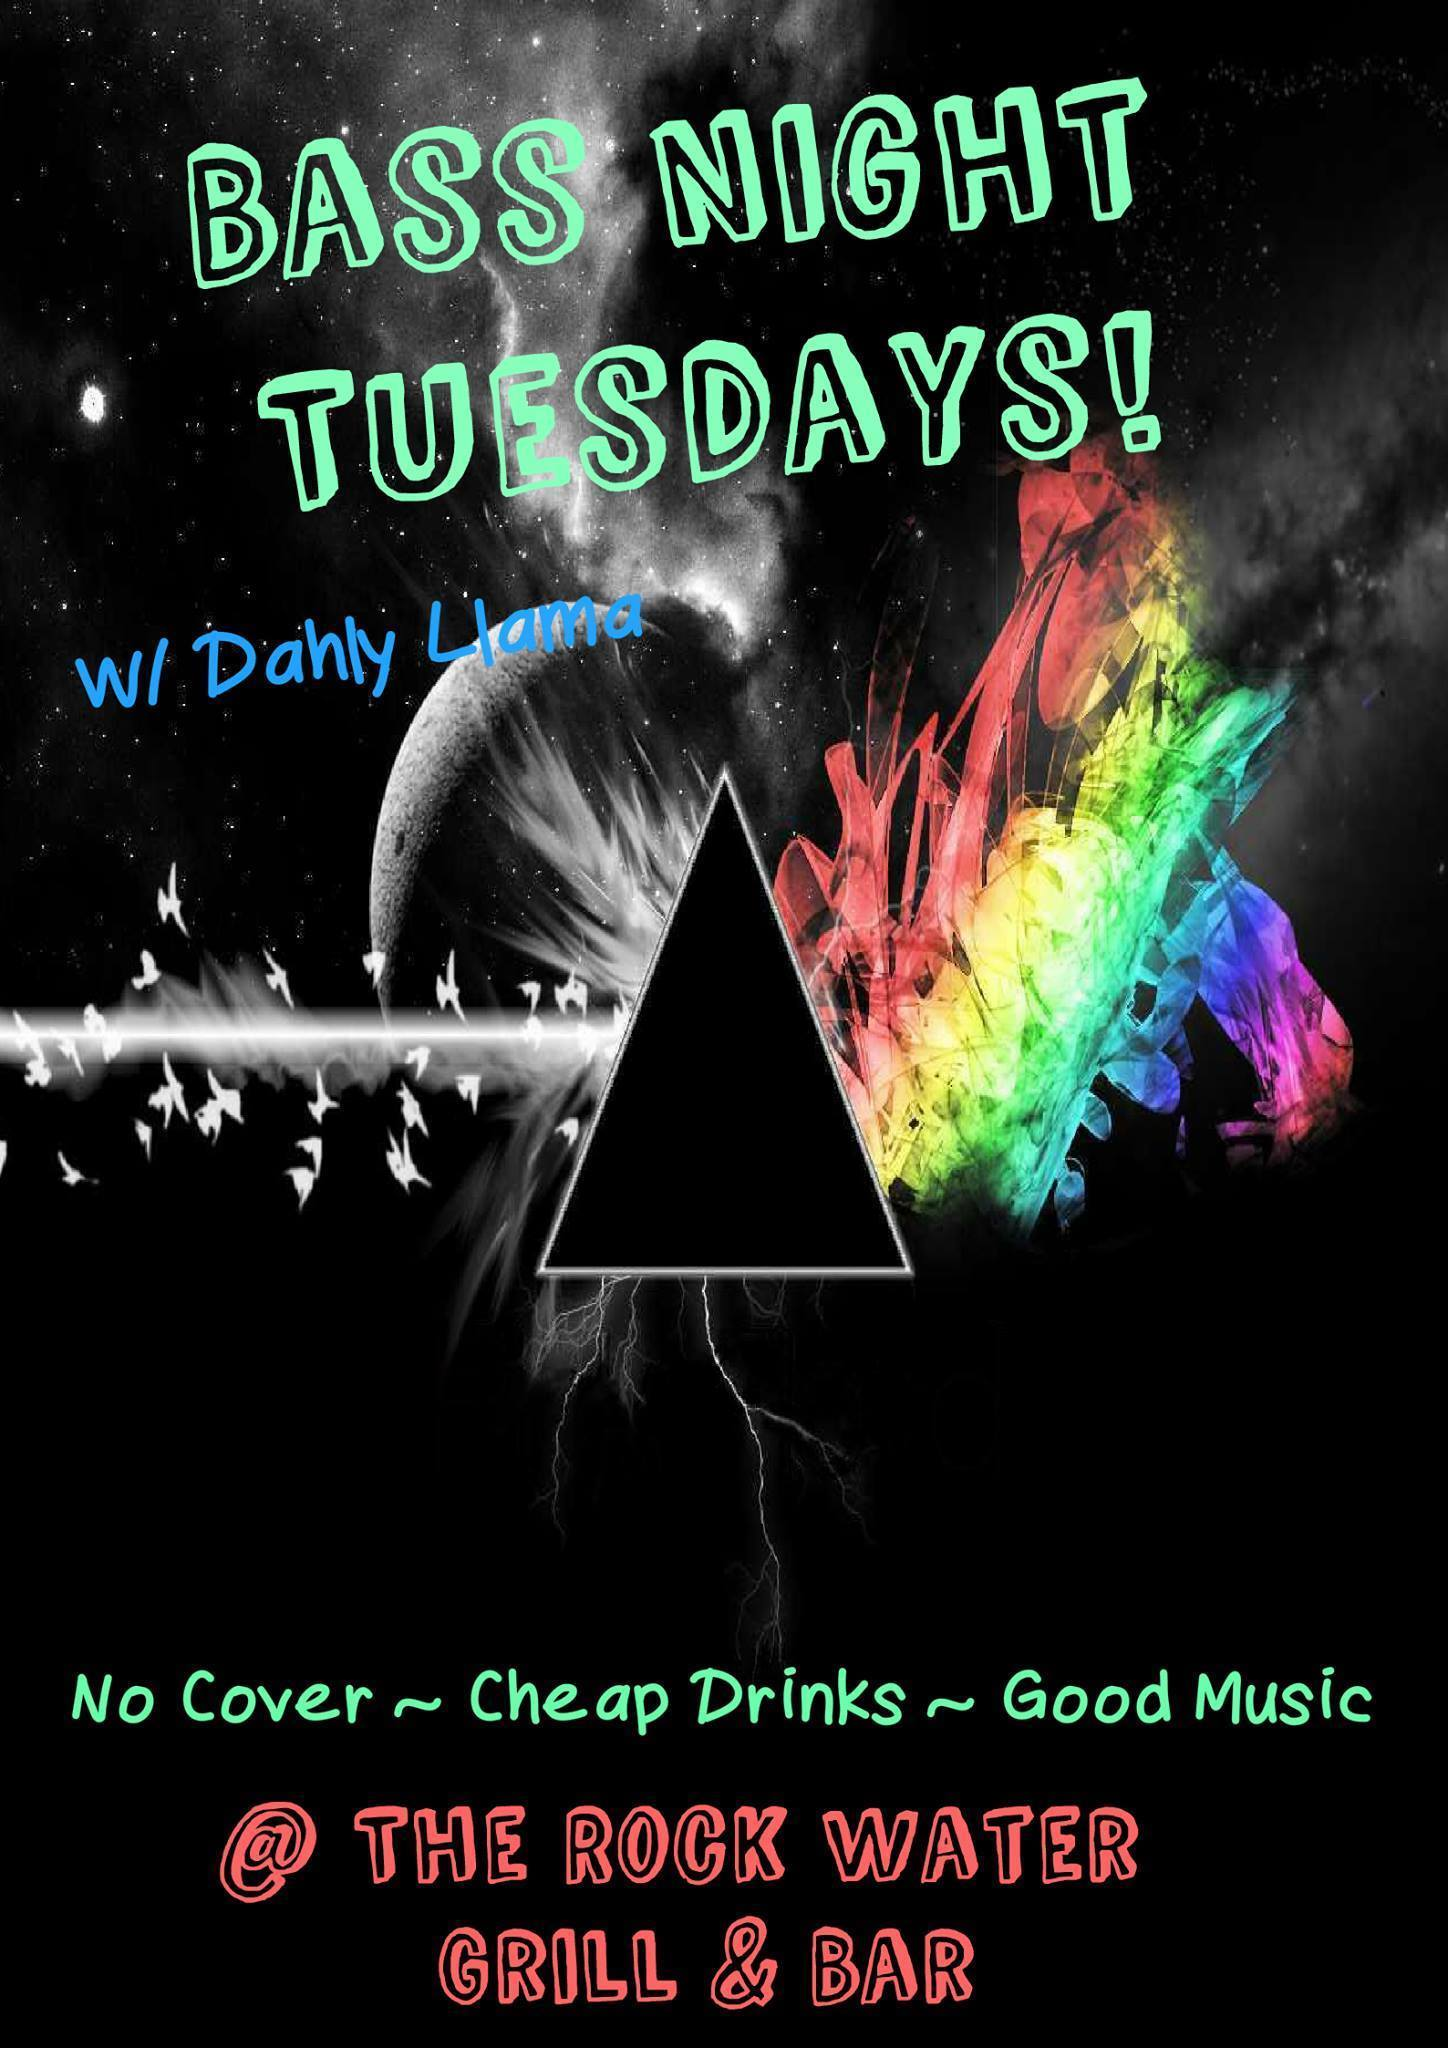 Bass Night Tuesdays at the Rockwater Grill & Bar in Golden